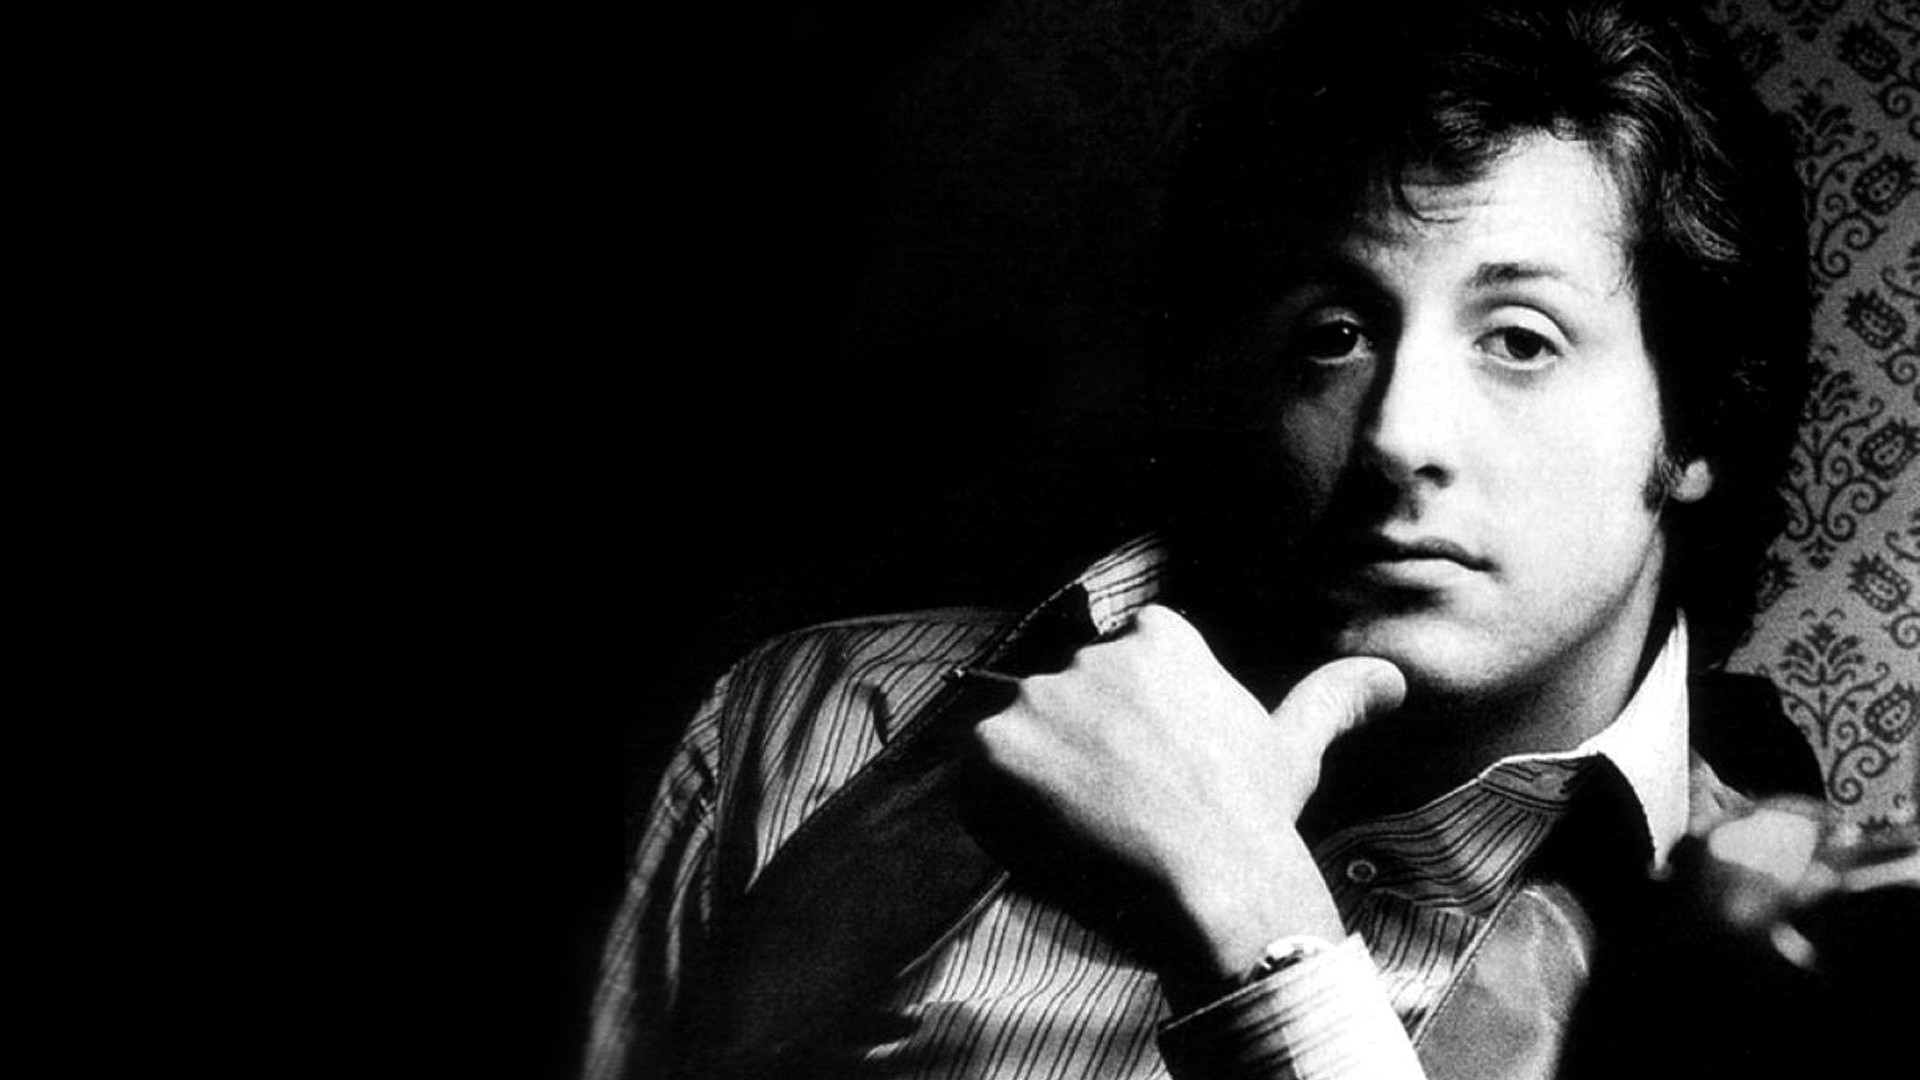 Sylvester Stallone Wallpapers High Resolution And Quality